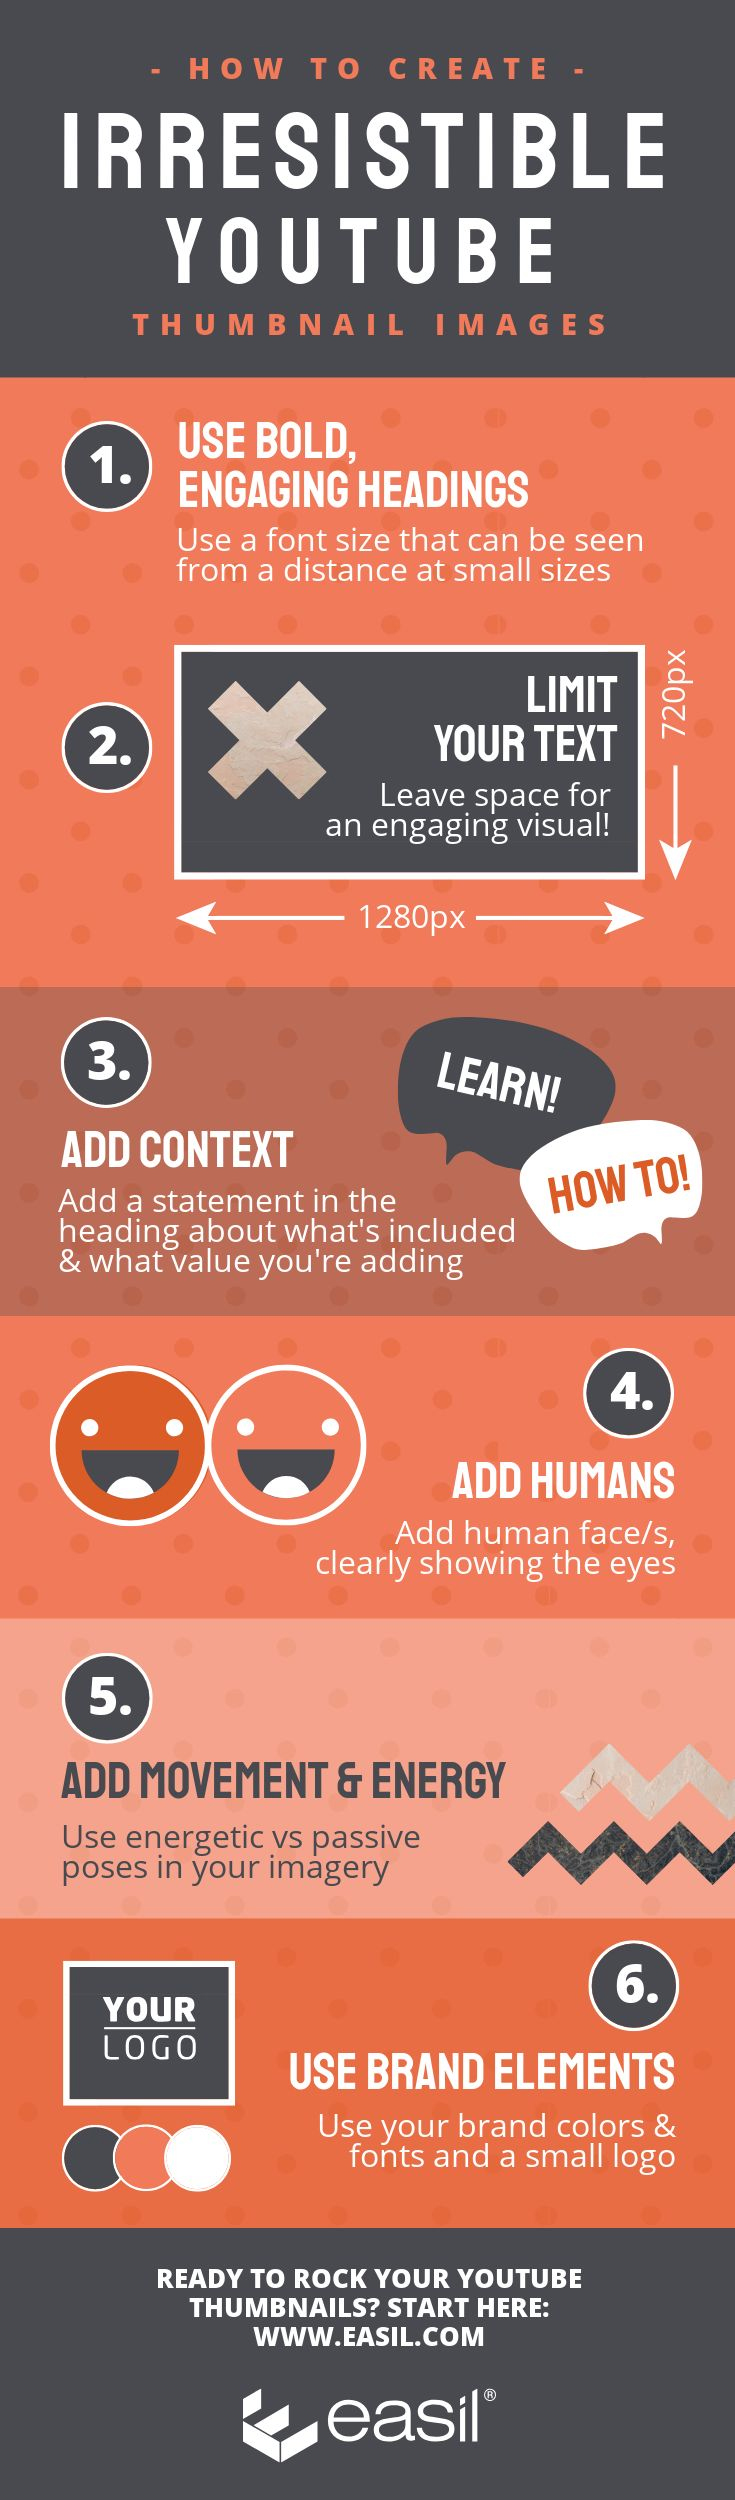 Infographic lists tips for effective YouTube thumbnails